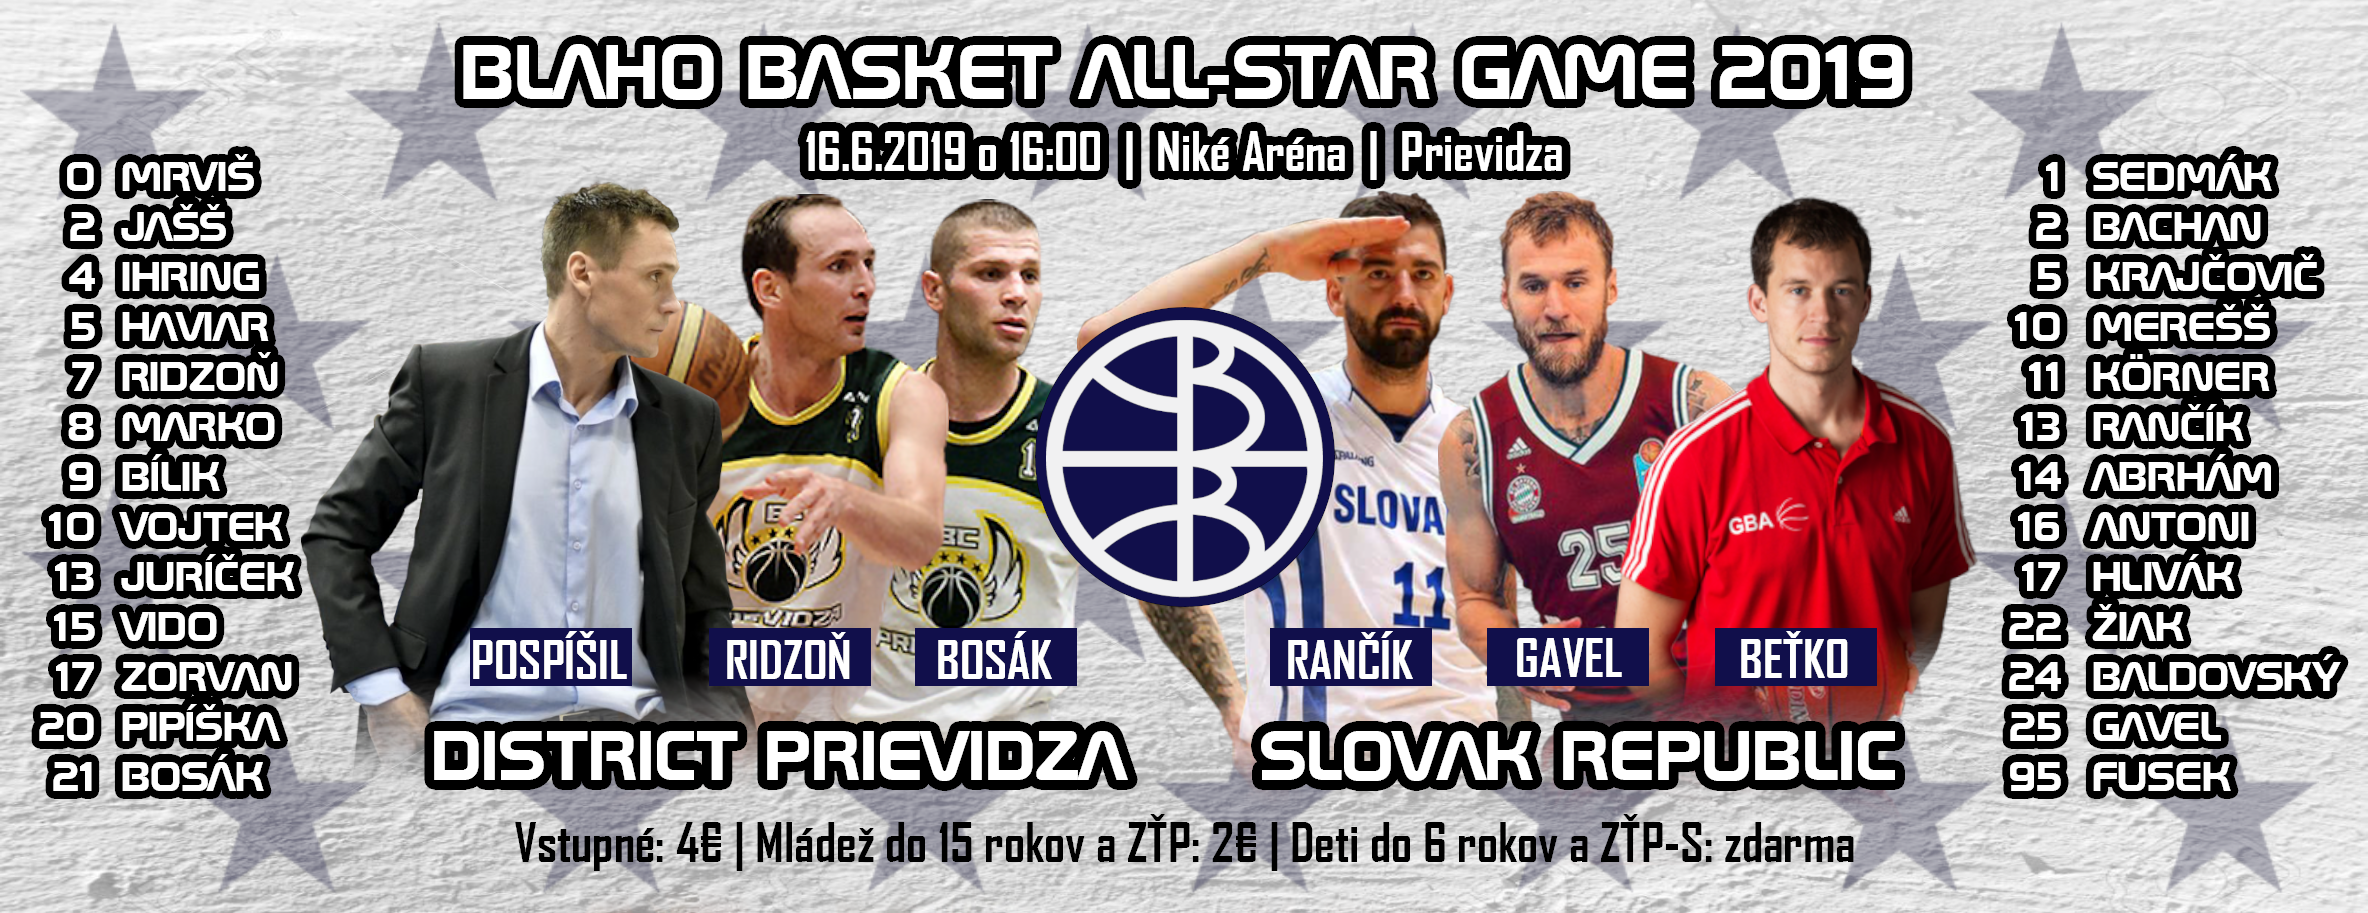 Blaho basketbal: Zápas hviezd - ALL-STAR Game 2019